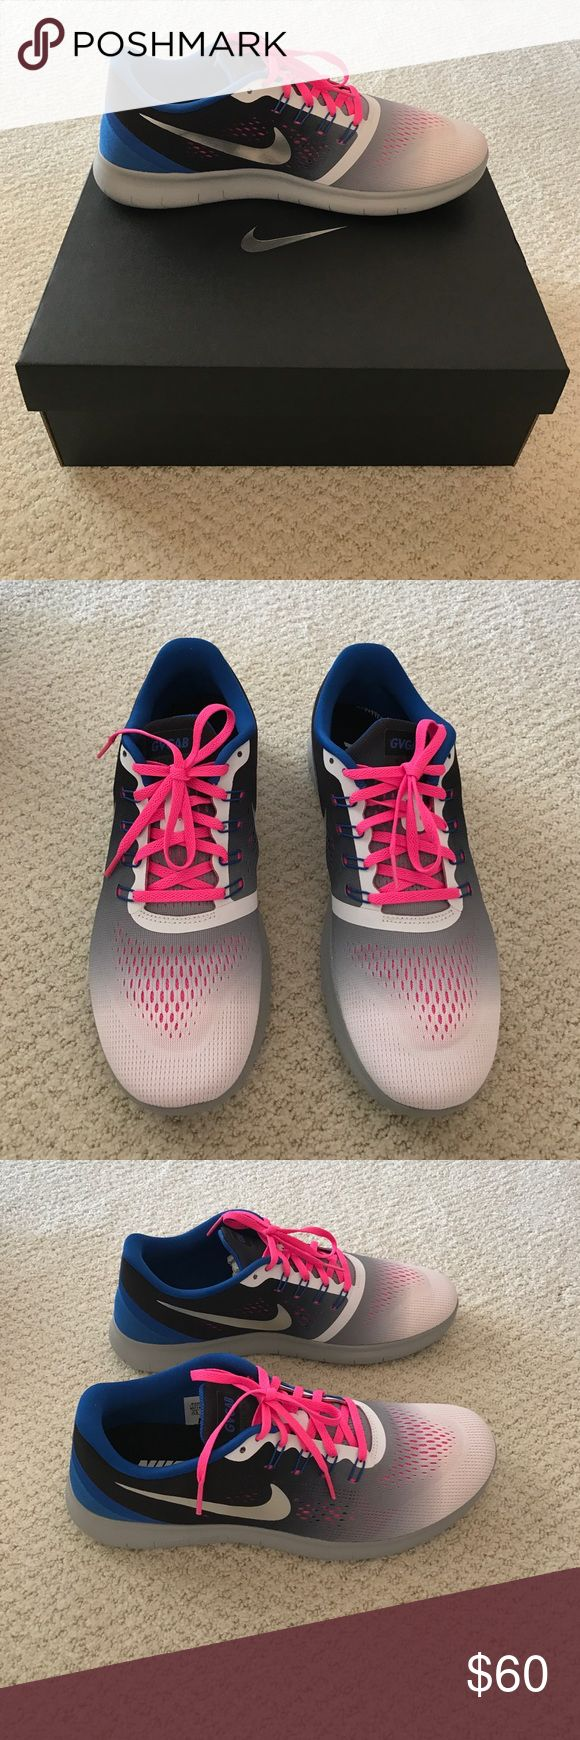 Nike ID women's running sneakers size 11.5 Never been worn! These hot pink, gray, white and royal sneakers are beautiful and the latest in Nike. Nike Shoes Sneakers